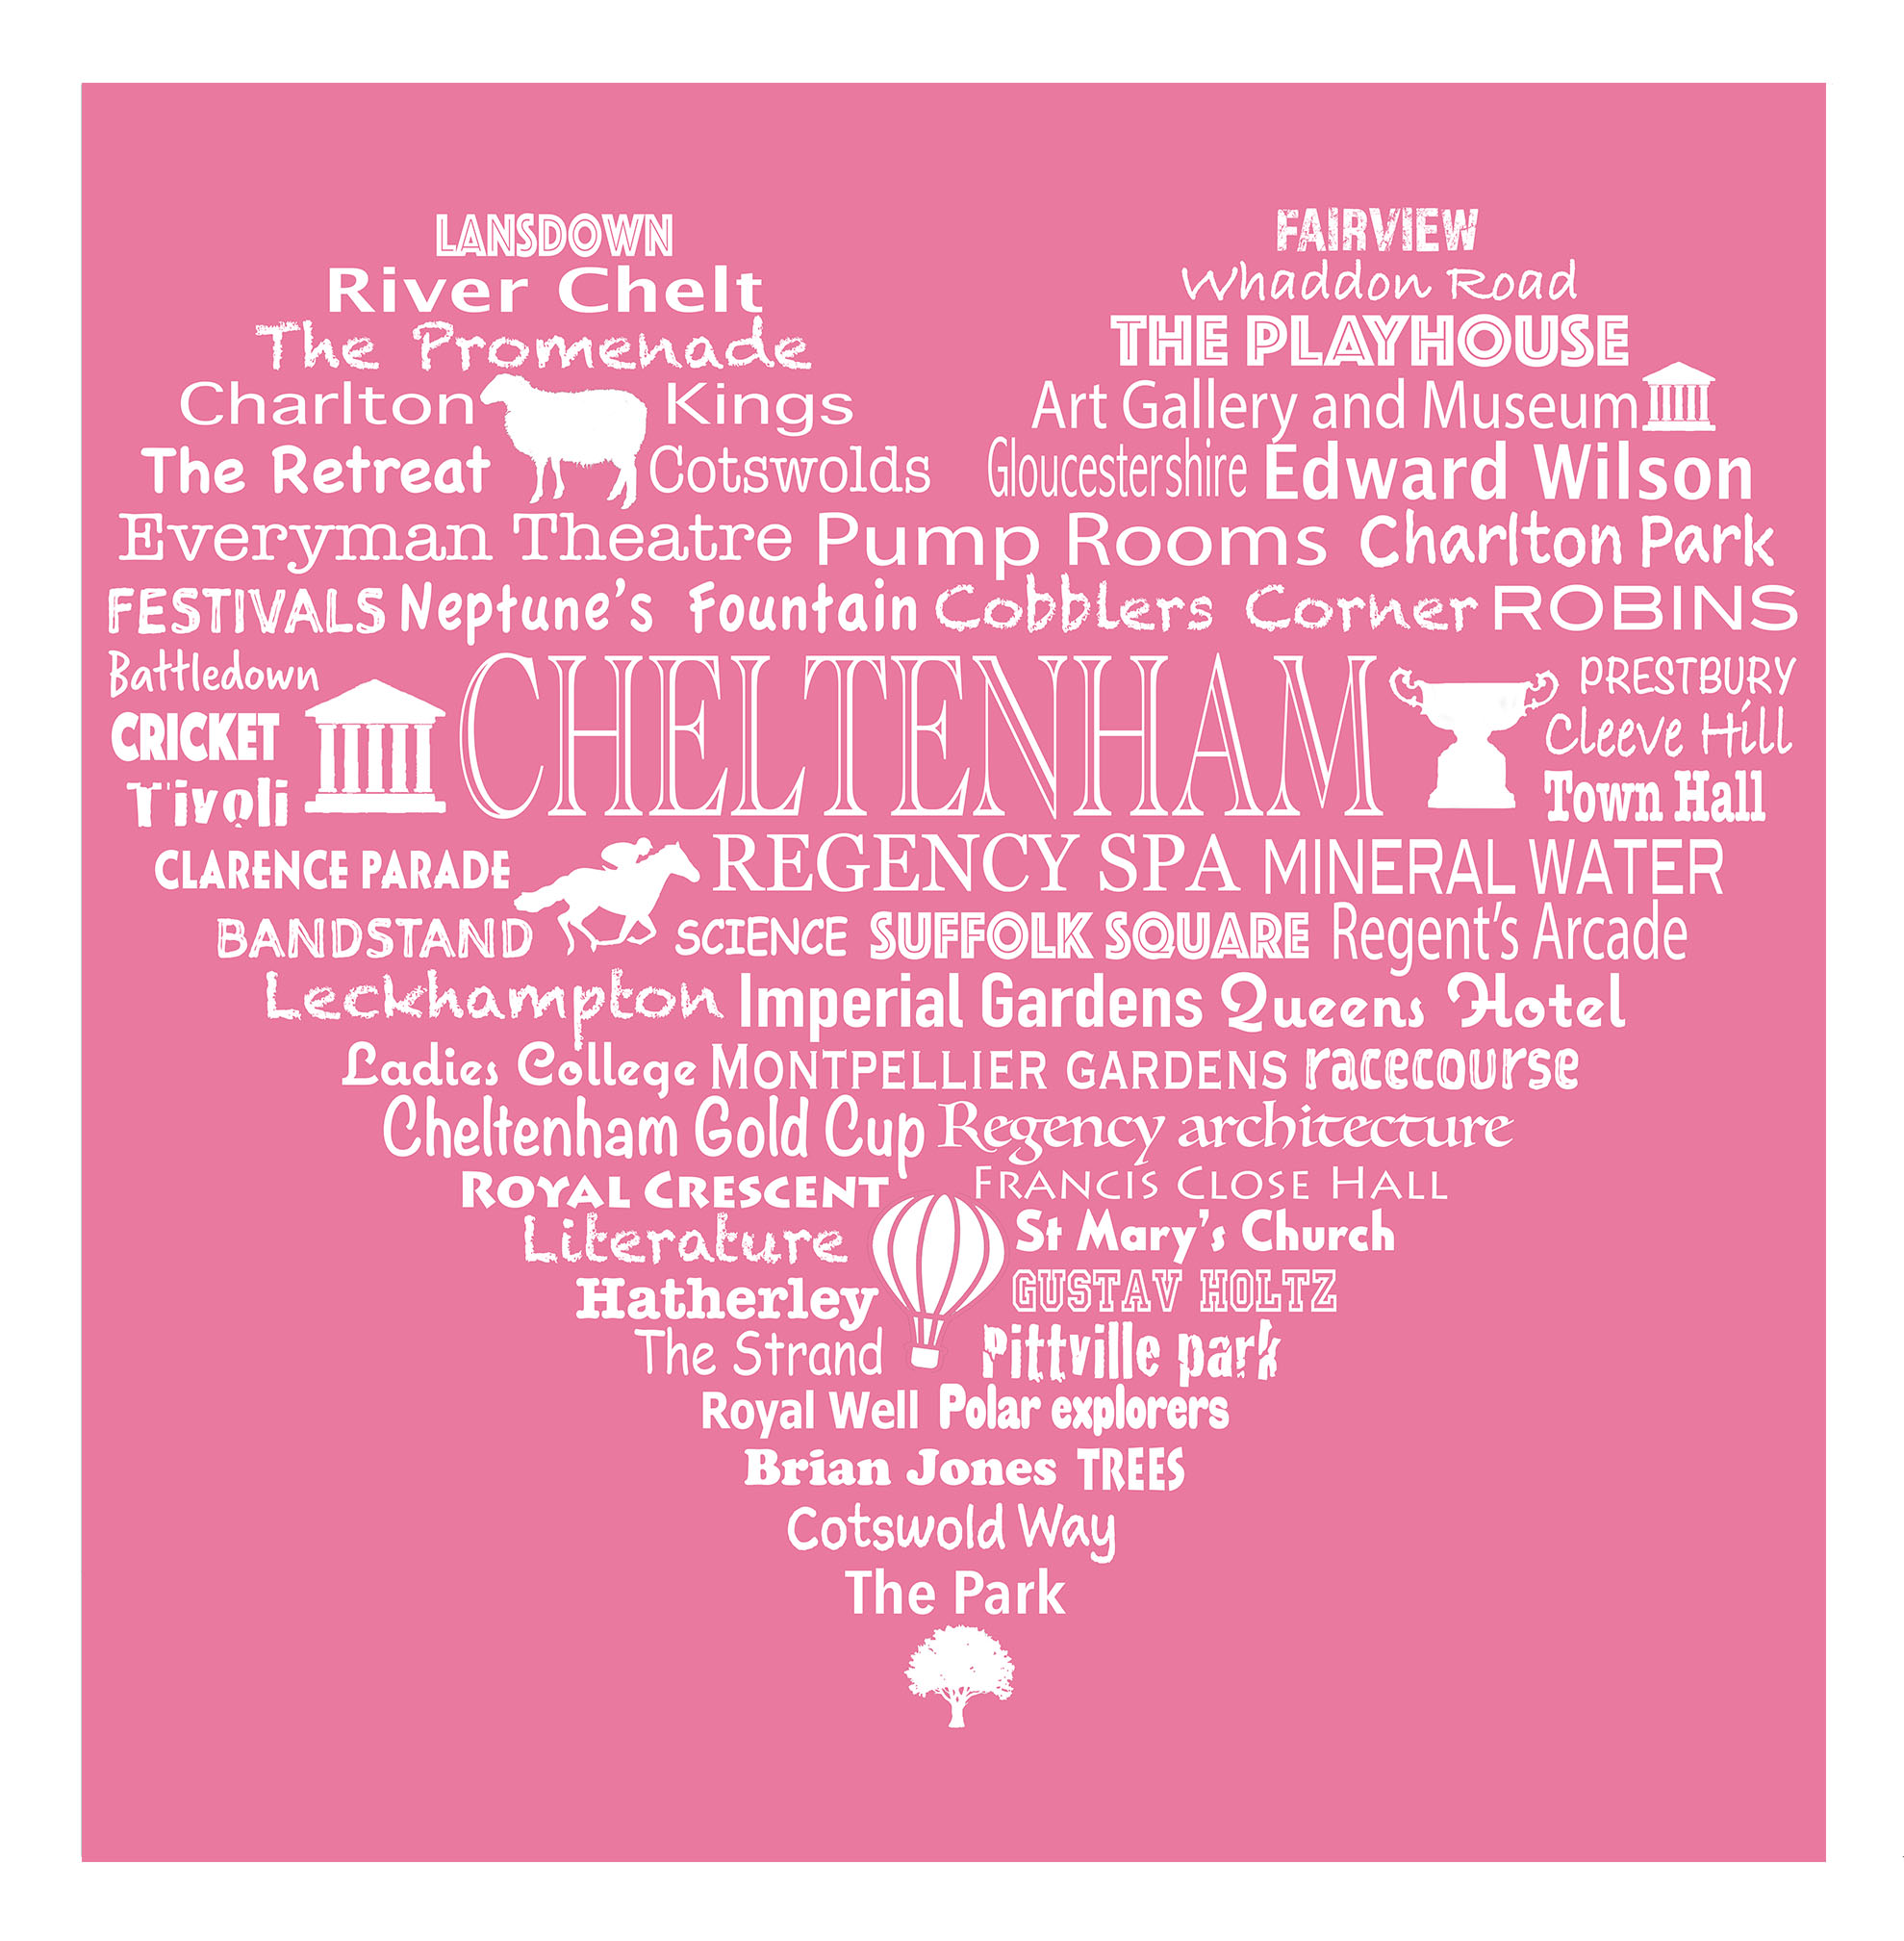 Cheltenham Heart - Rose